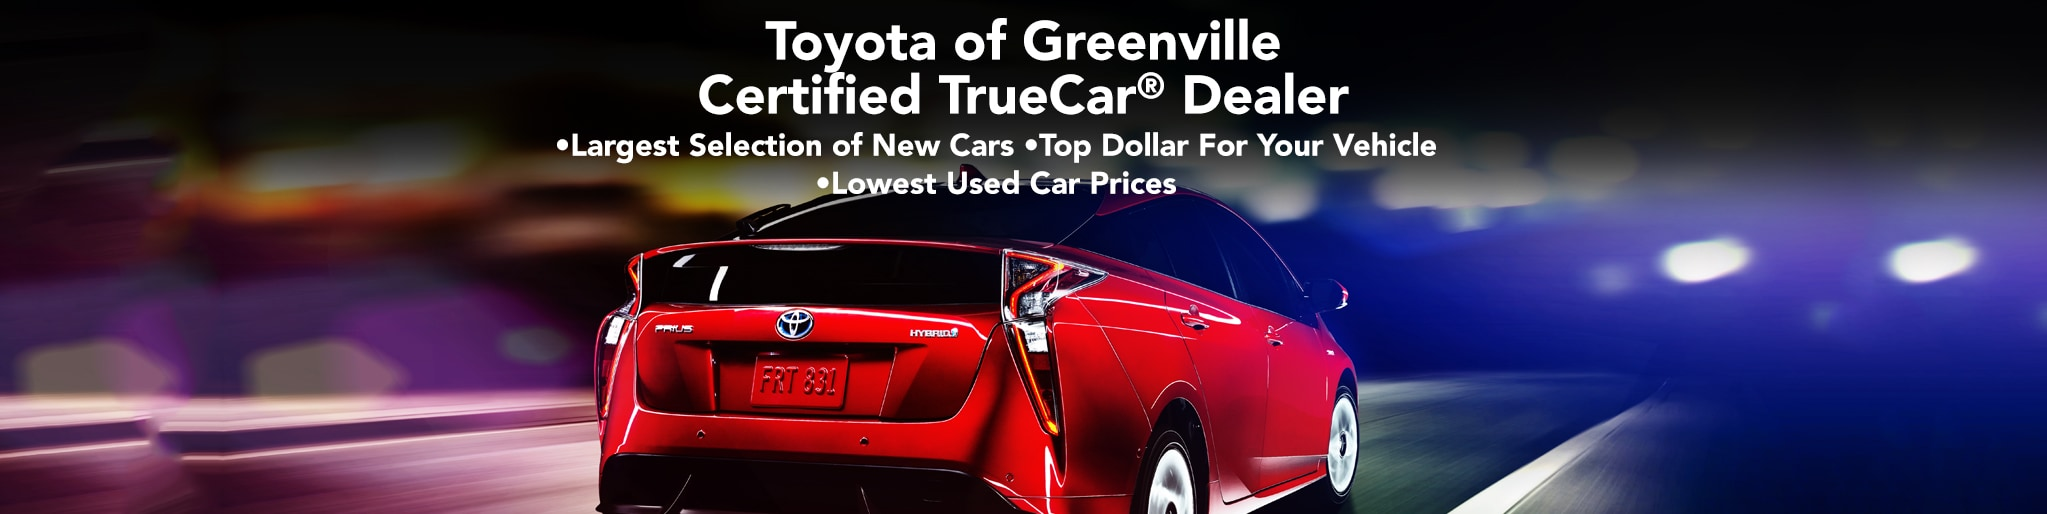 certified truecar toyota dealer in greenville sc new and used toyota truecar dealer near. Black Bedroom Furniture Sets. Home Design Ideas